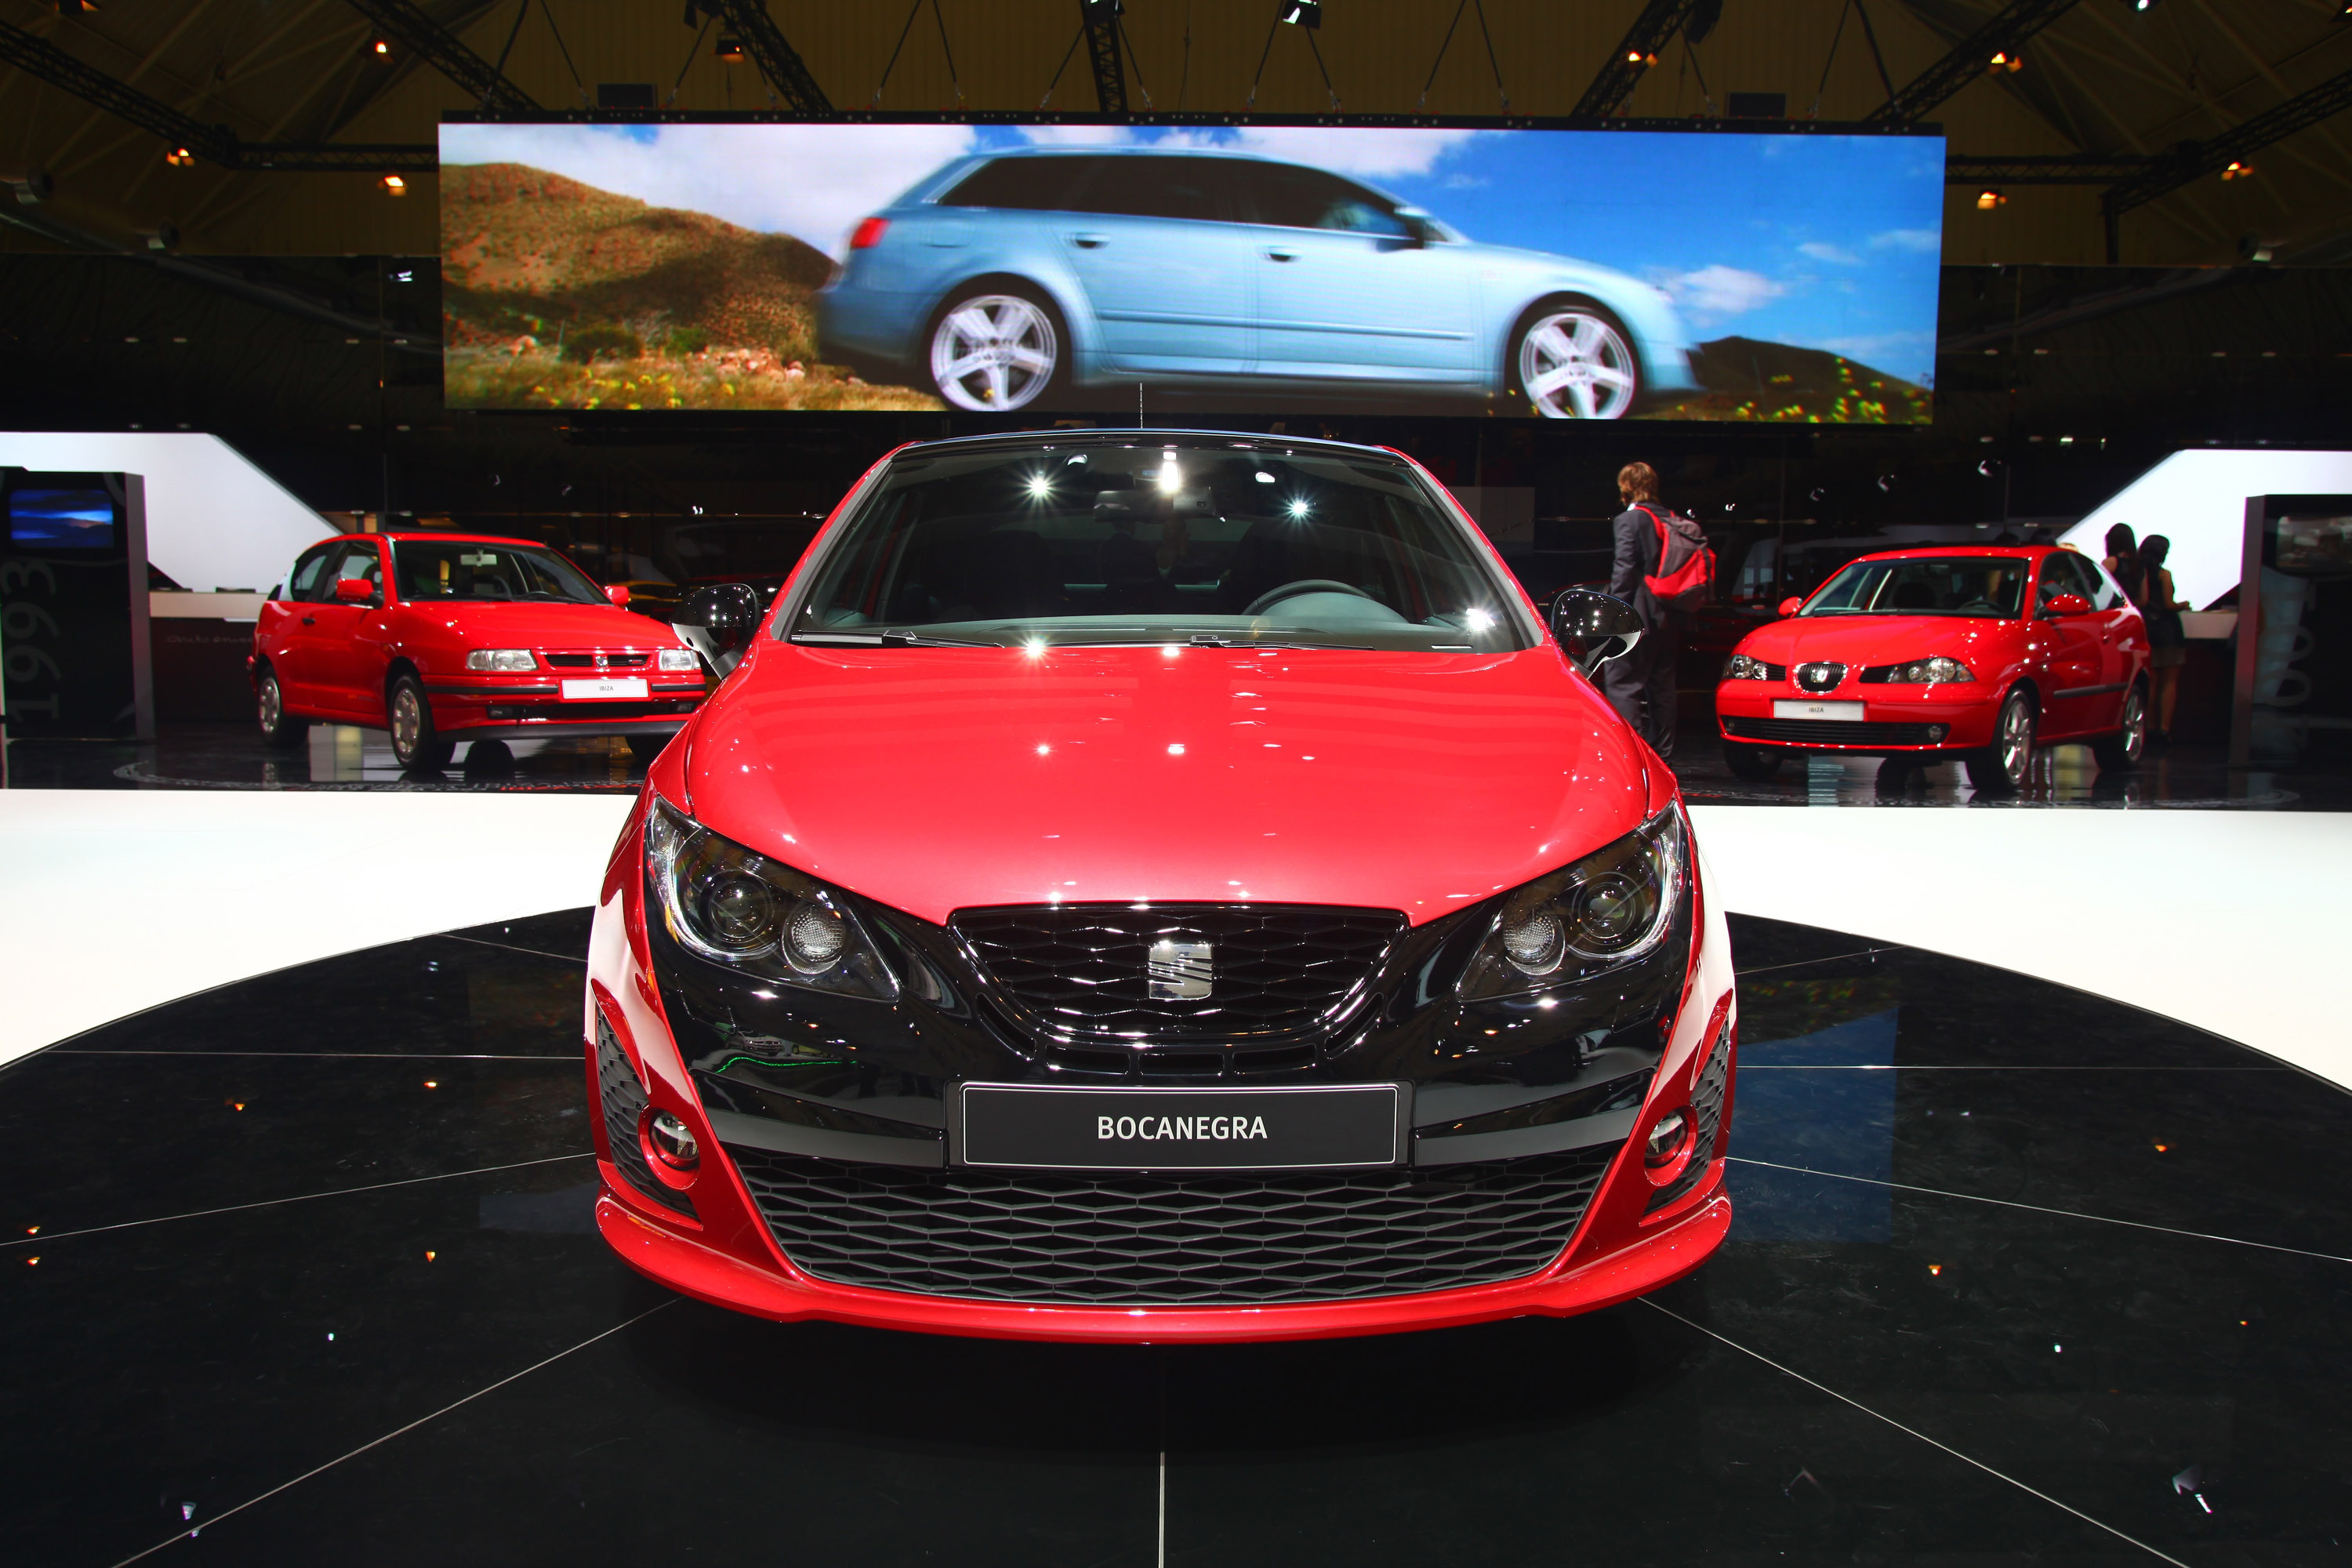 SEAT Ibiza Bocanegra at the Barcelona Motor Show - Picture ...